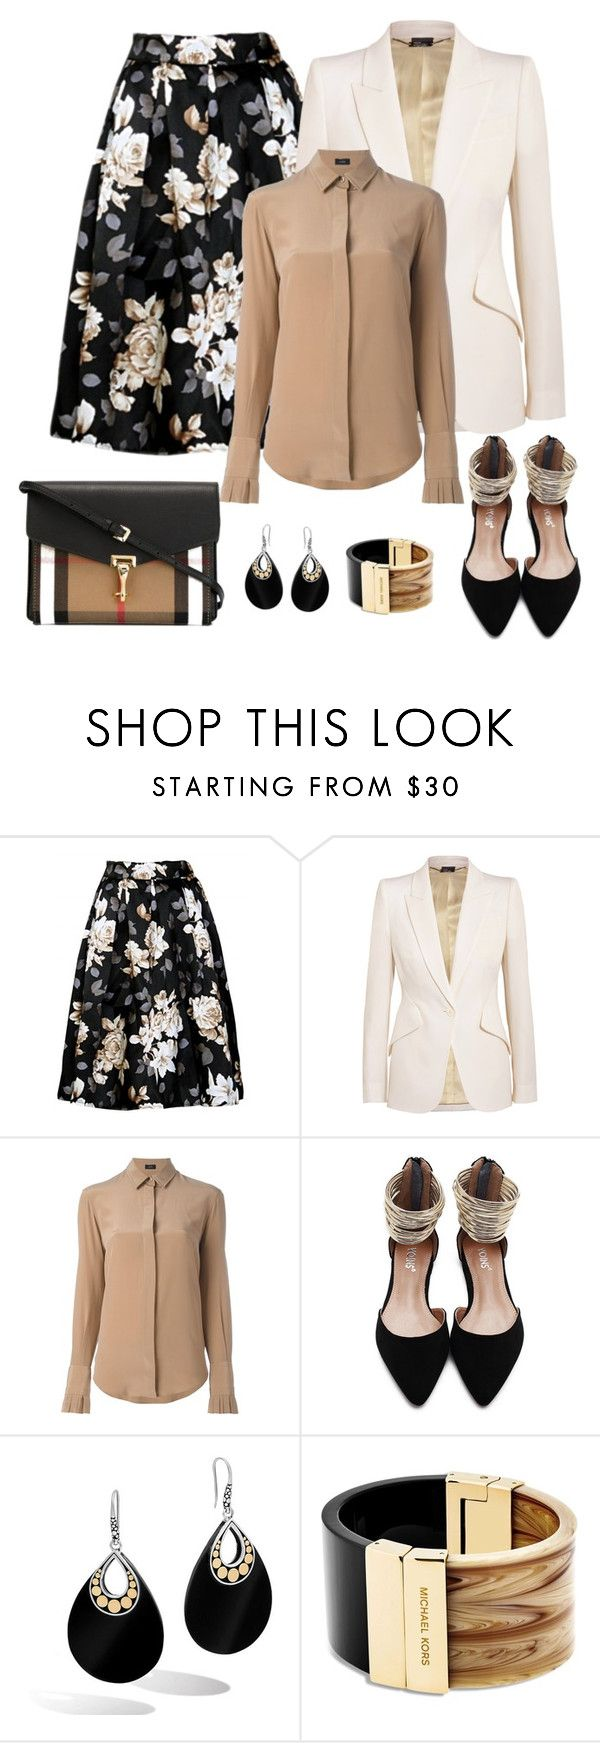 """""""Untitled #1118"""" by gallant81 ❤ liked on Polyvore featuring Alexander McQueen, Joseph, John Hardy, Michael Kors and Burberry"""